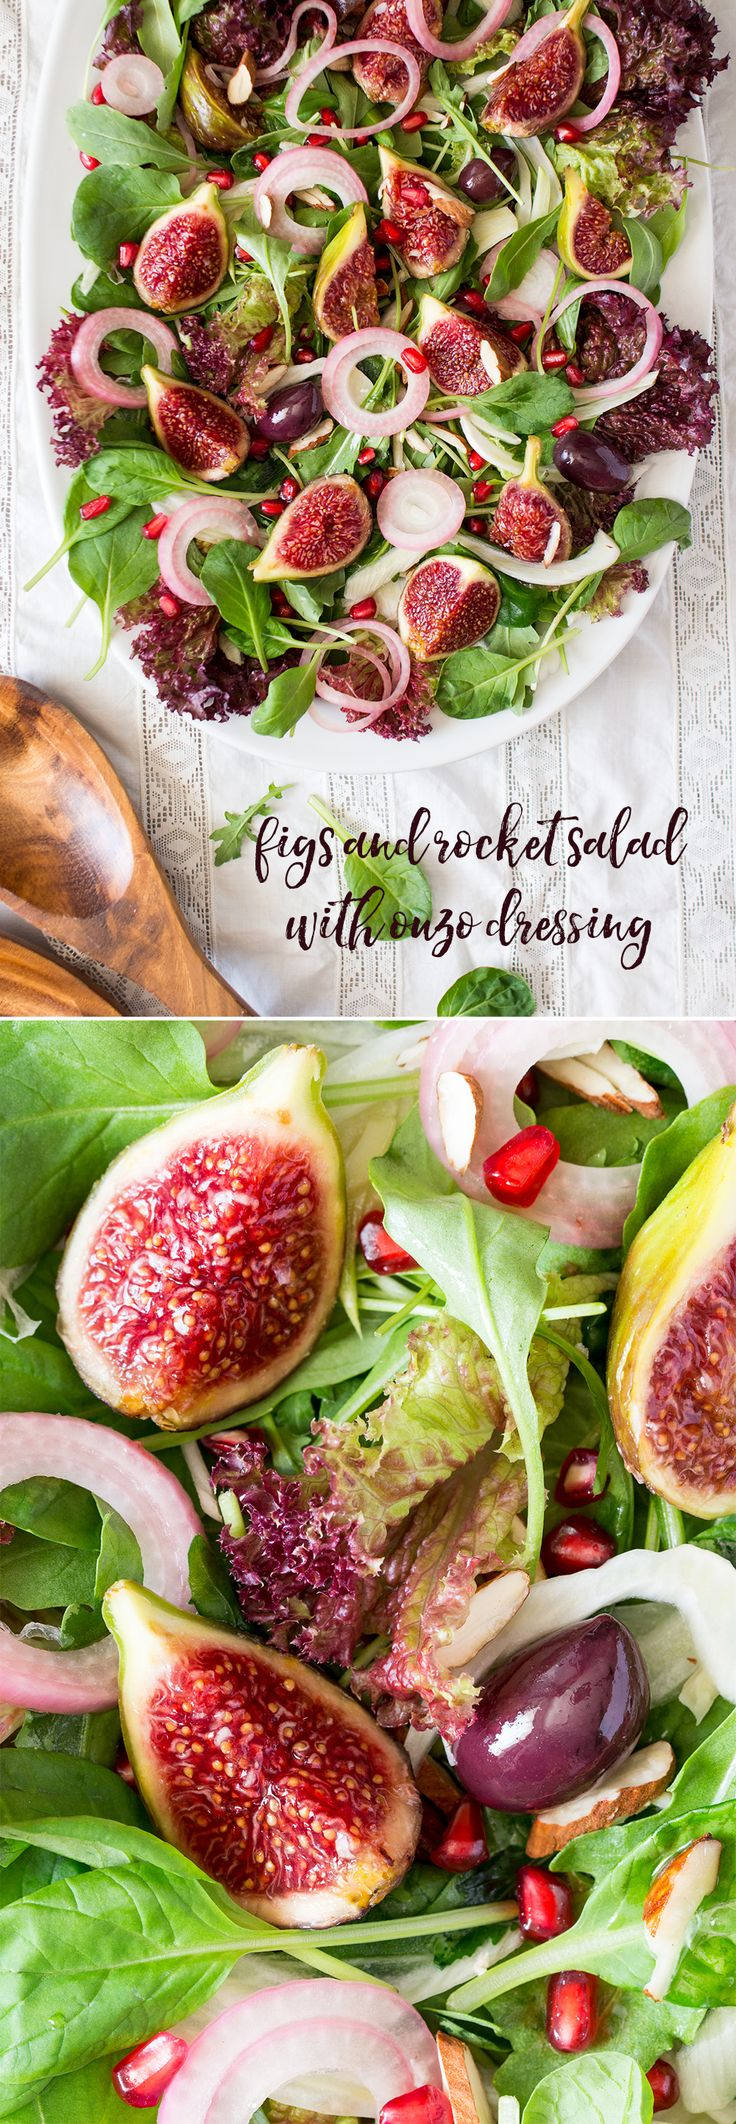 Fig and rocket salad with ouzo dressing